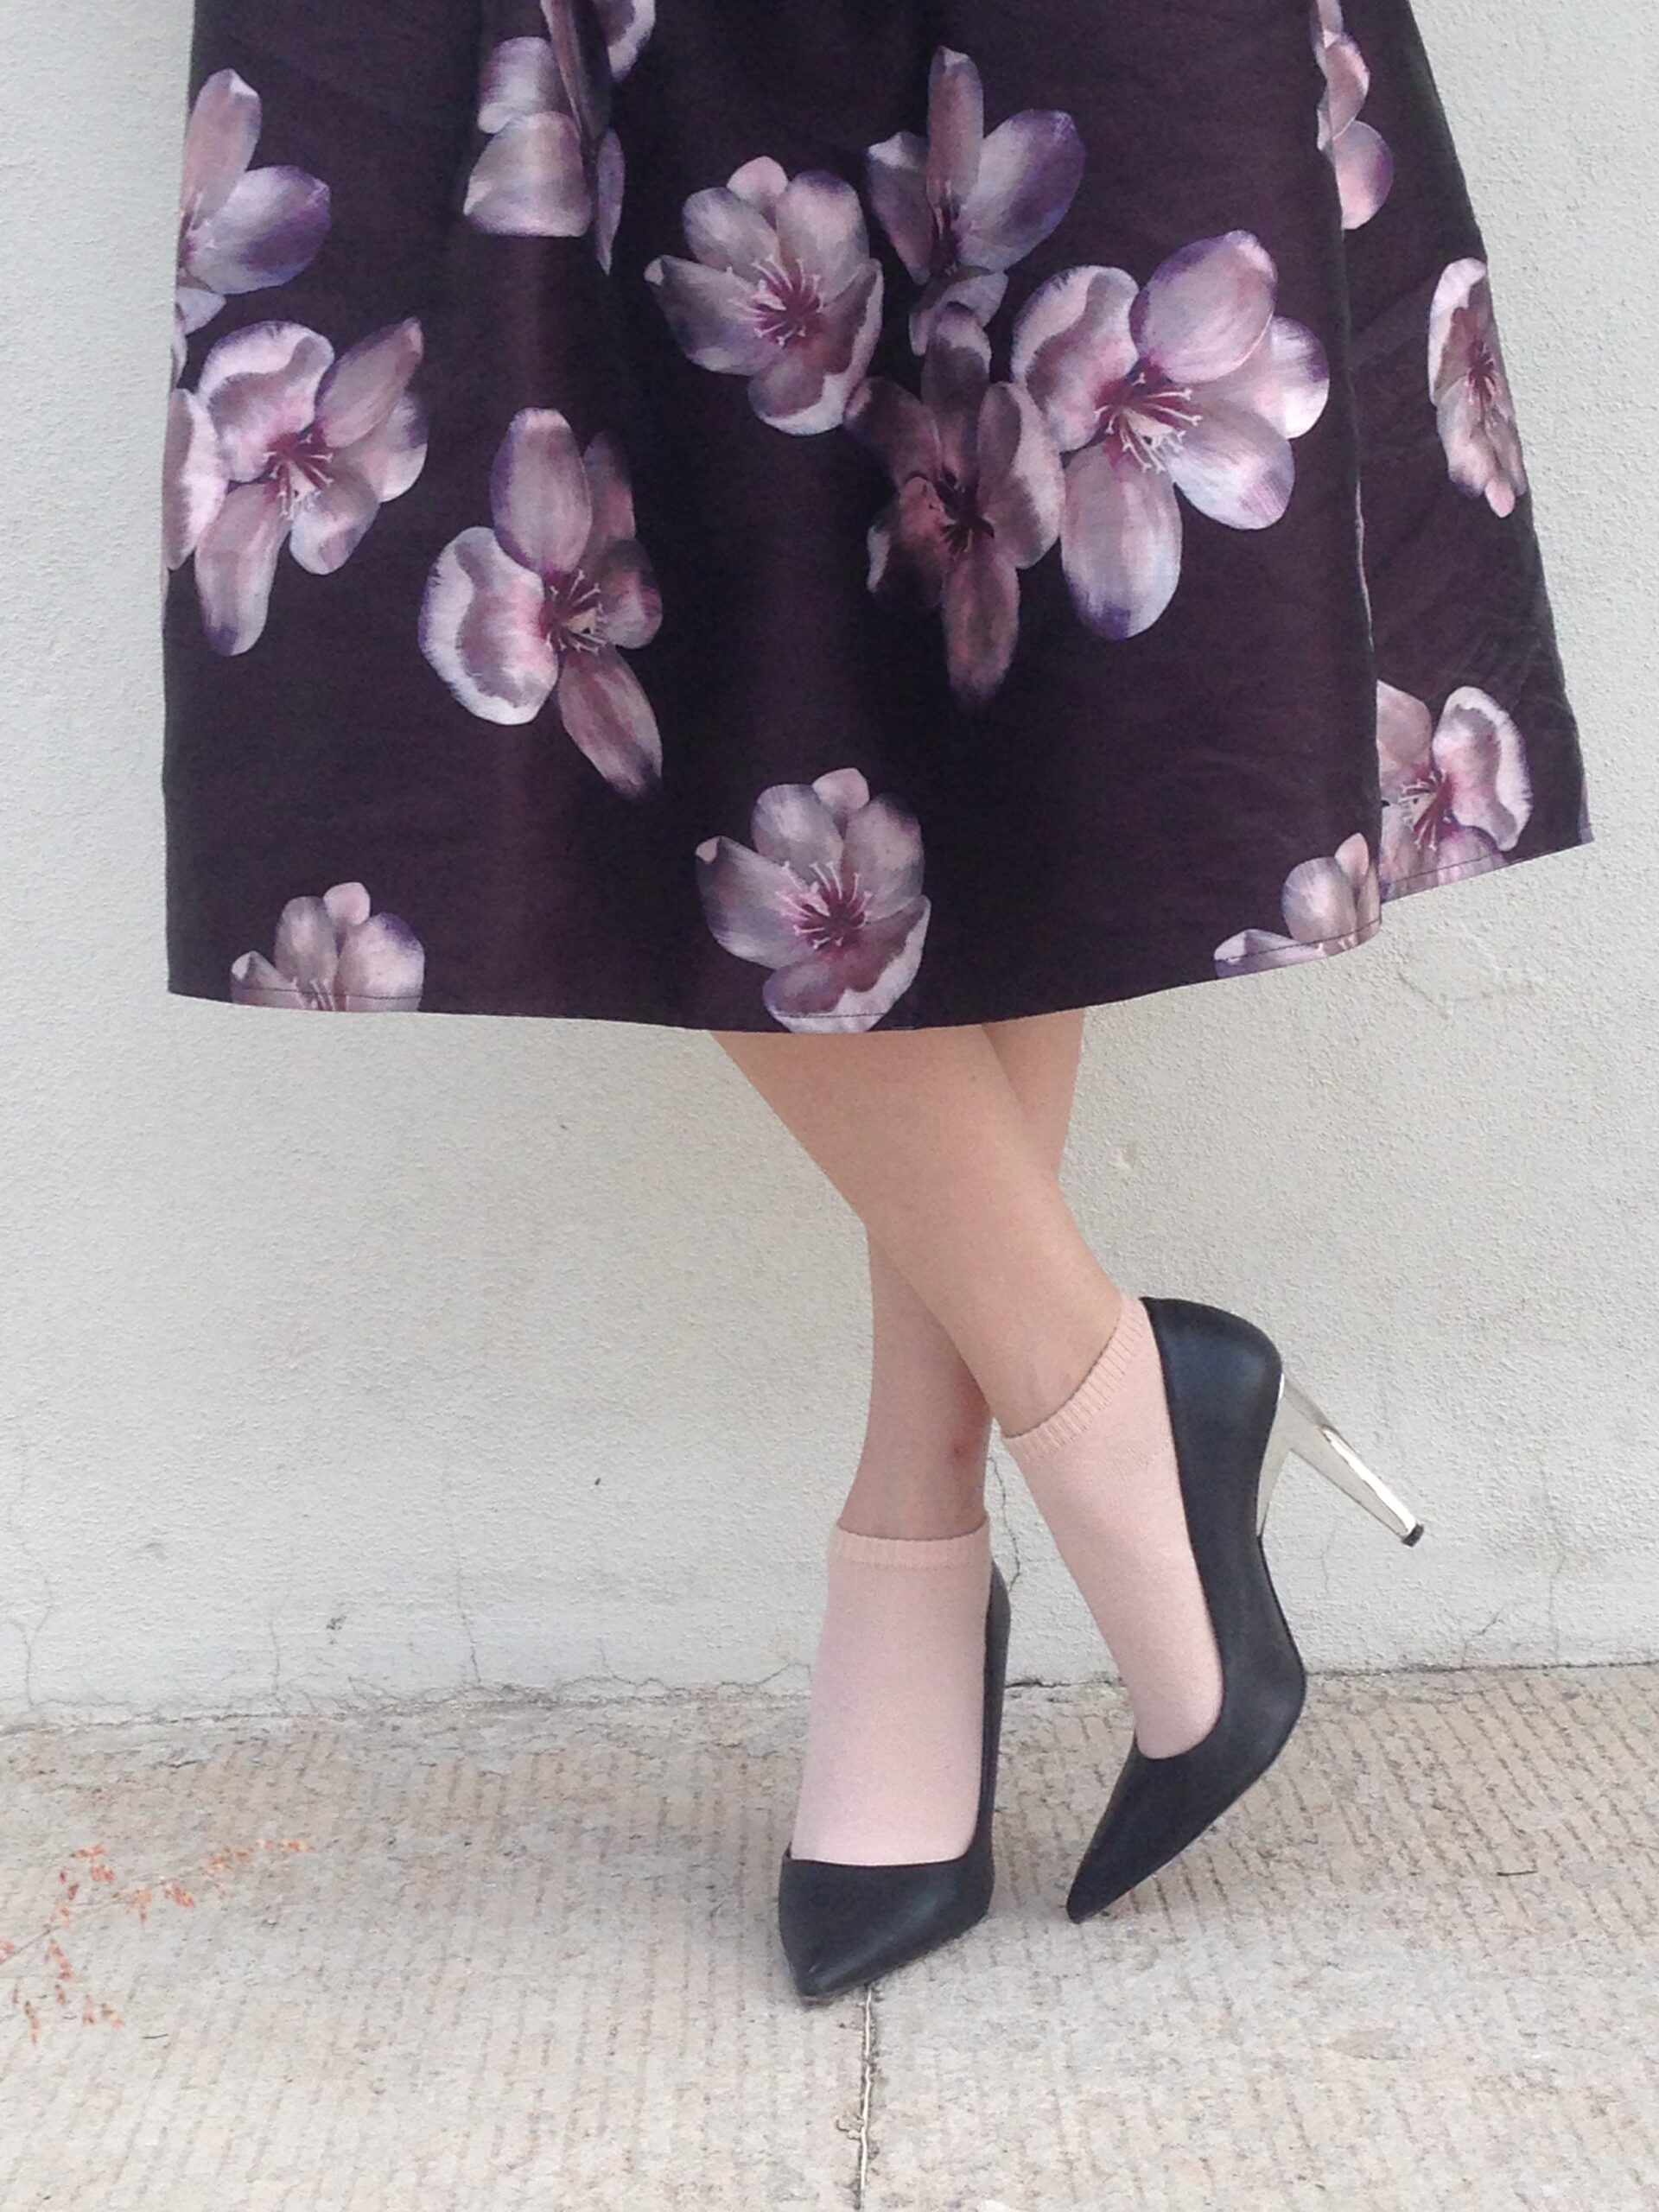 flower print skirt, pink socks, heels with socks, black heels, stilletos, petalick heel, midi skirt,